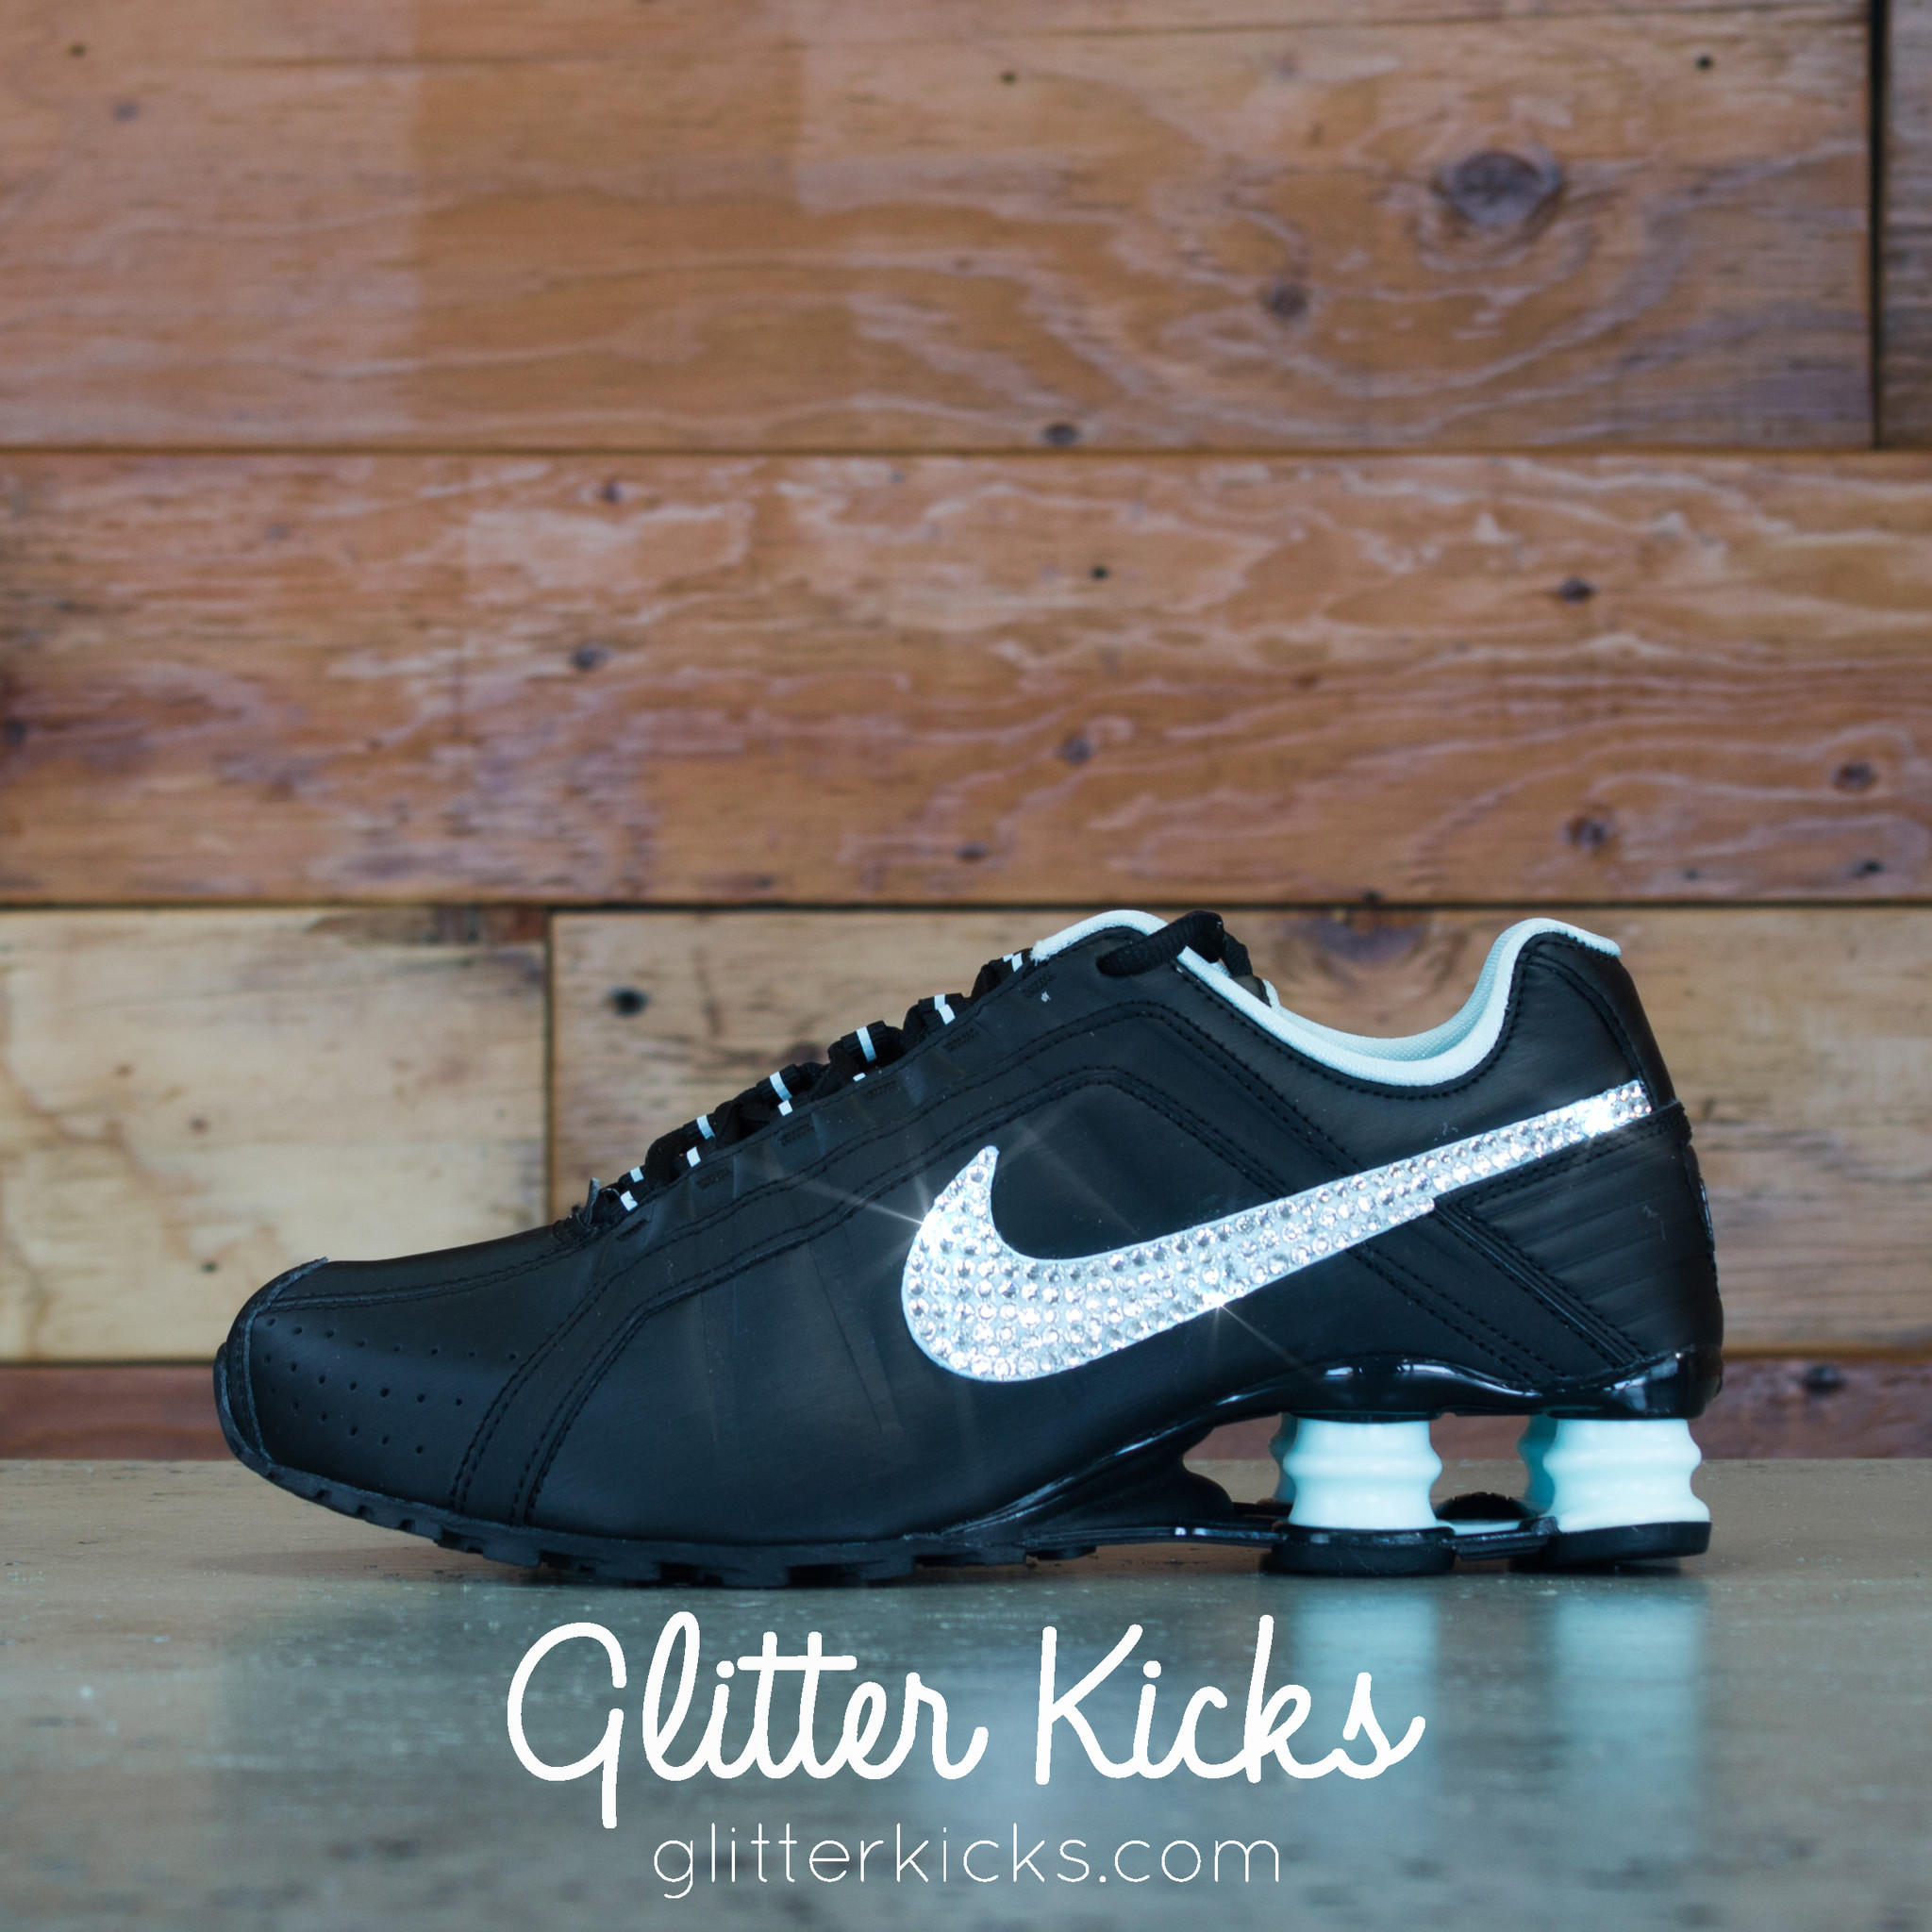 Nike Shox Current Glitter Kicks Running from Glitter Kicks b6184a90b